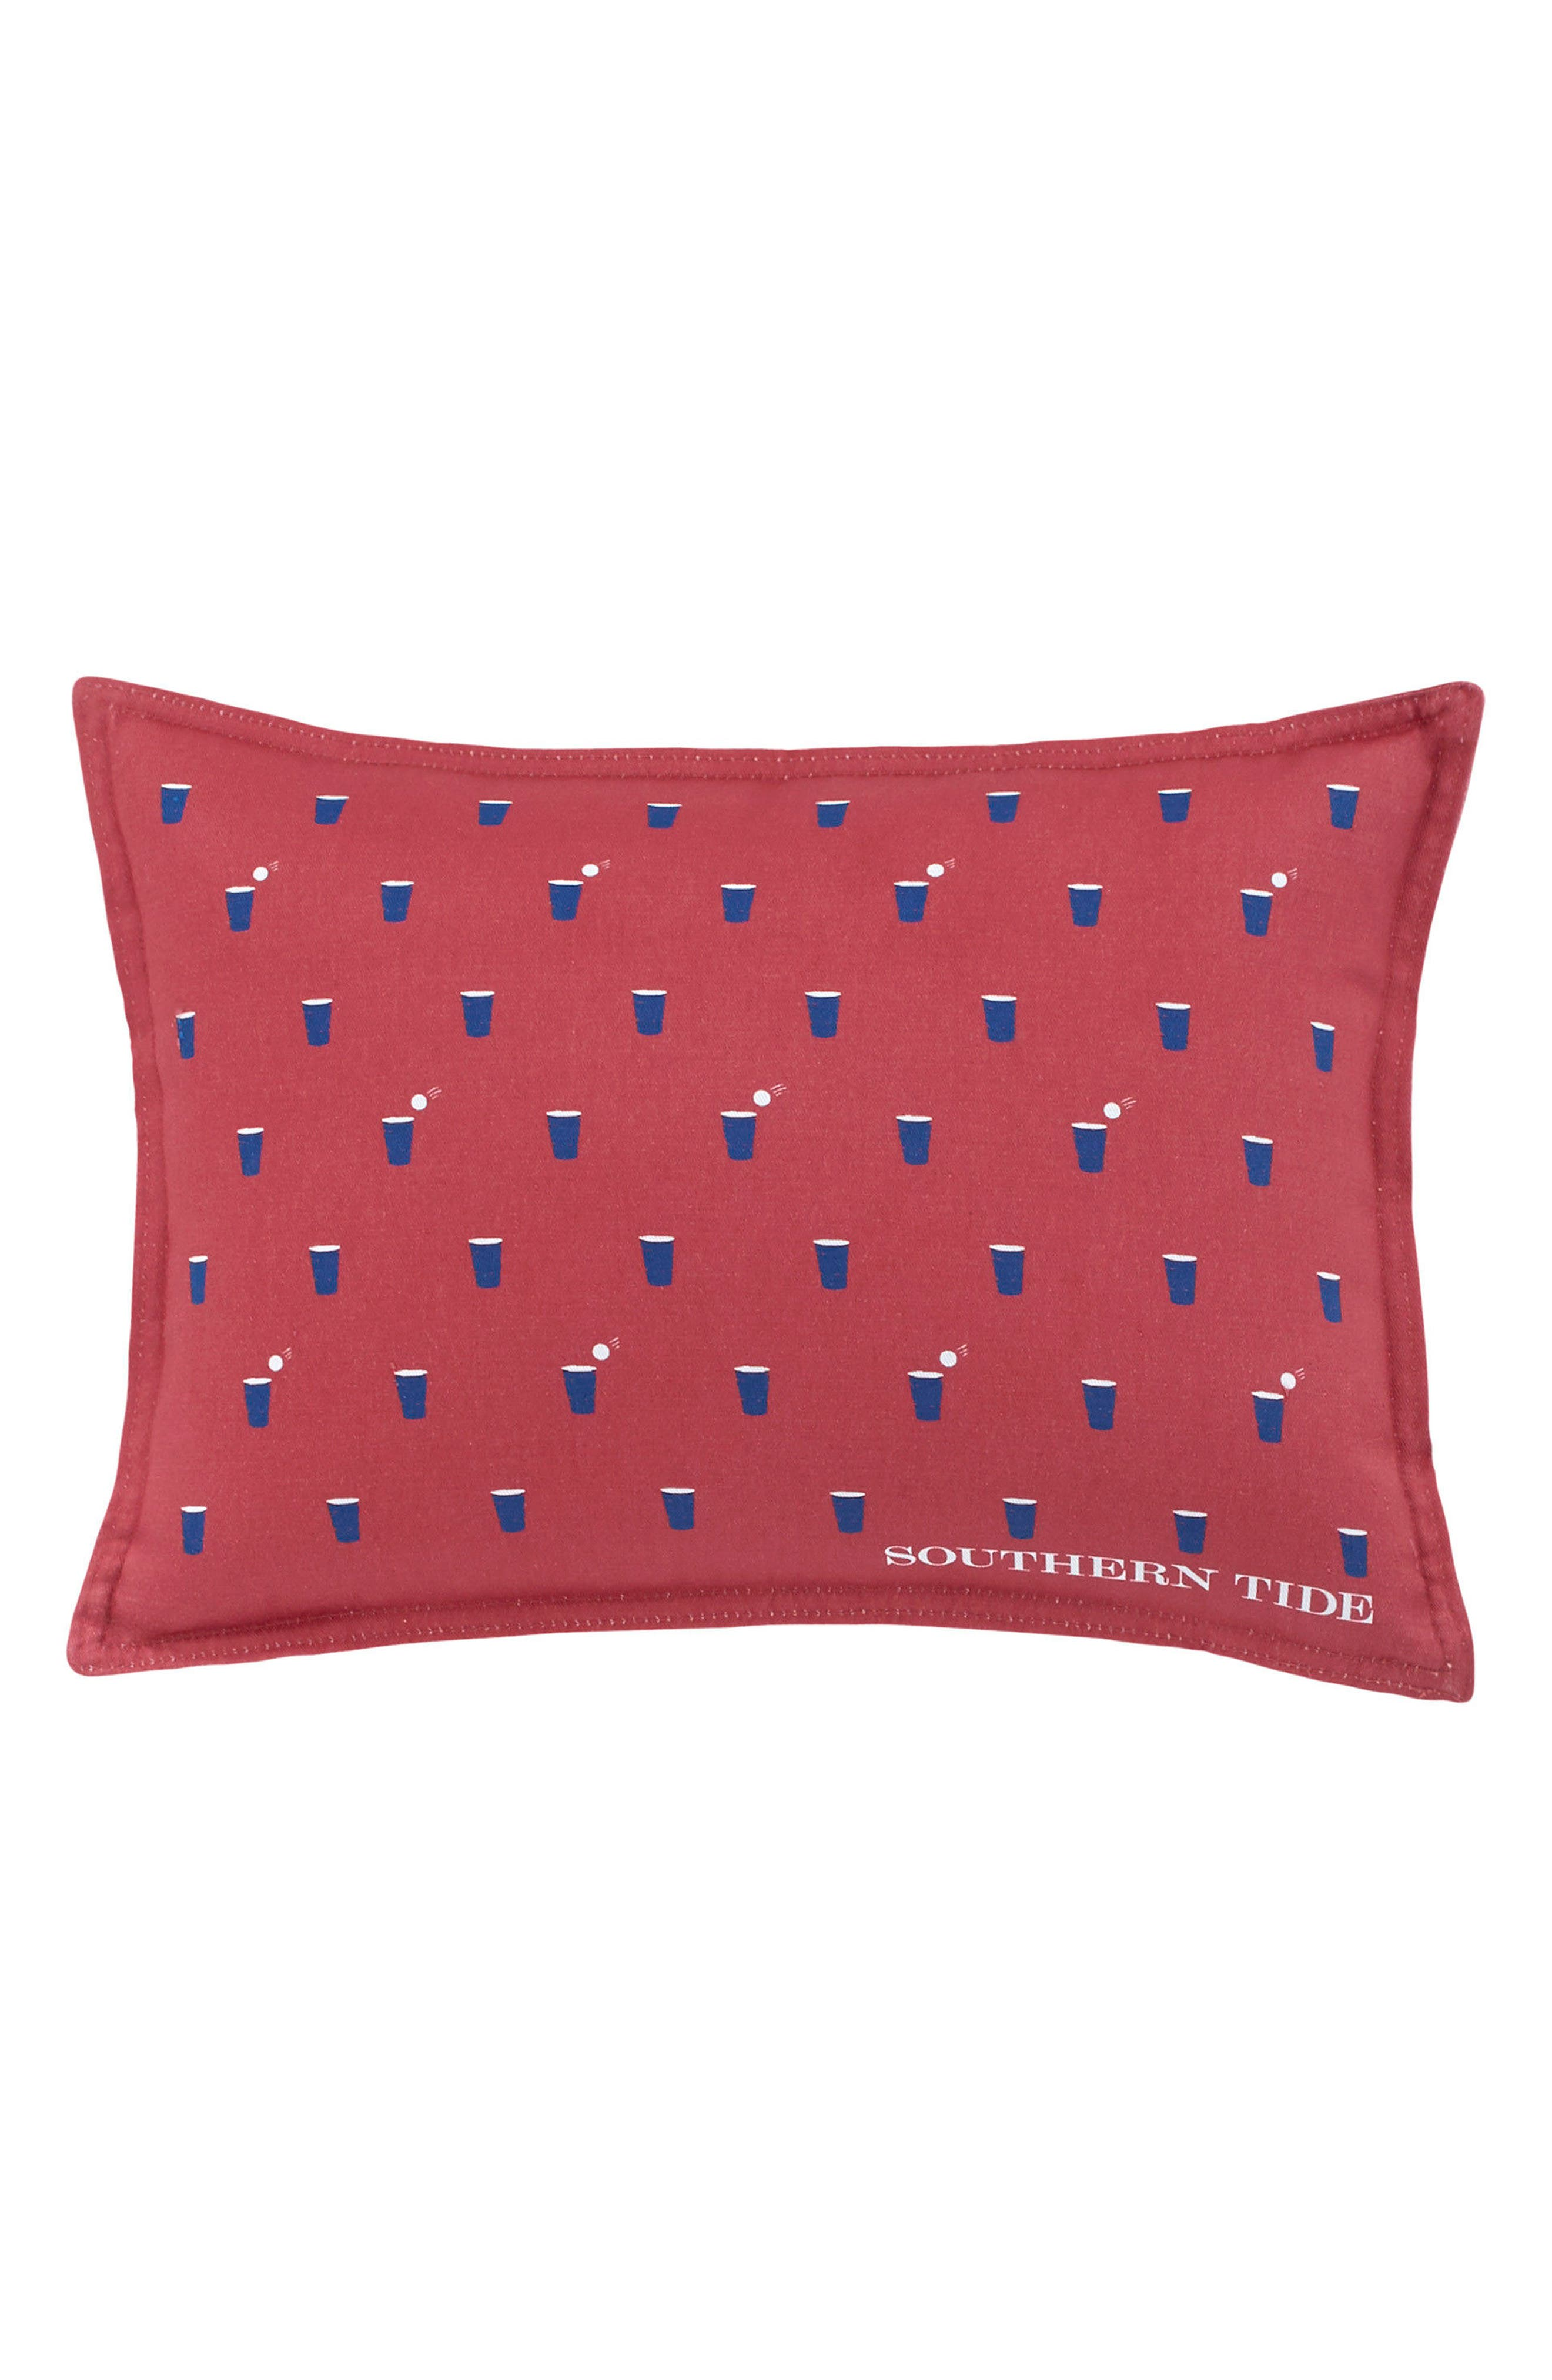 Alternate Image 1 Selected - Southern Tide Skipjack Chino Happy Hour Accent Pillow